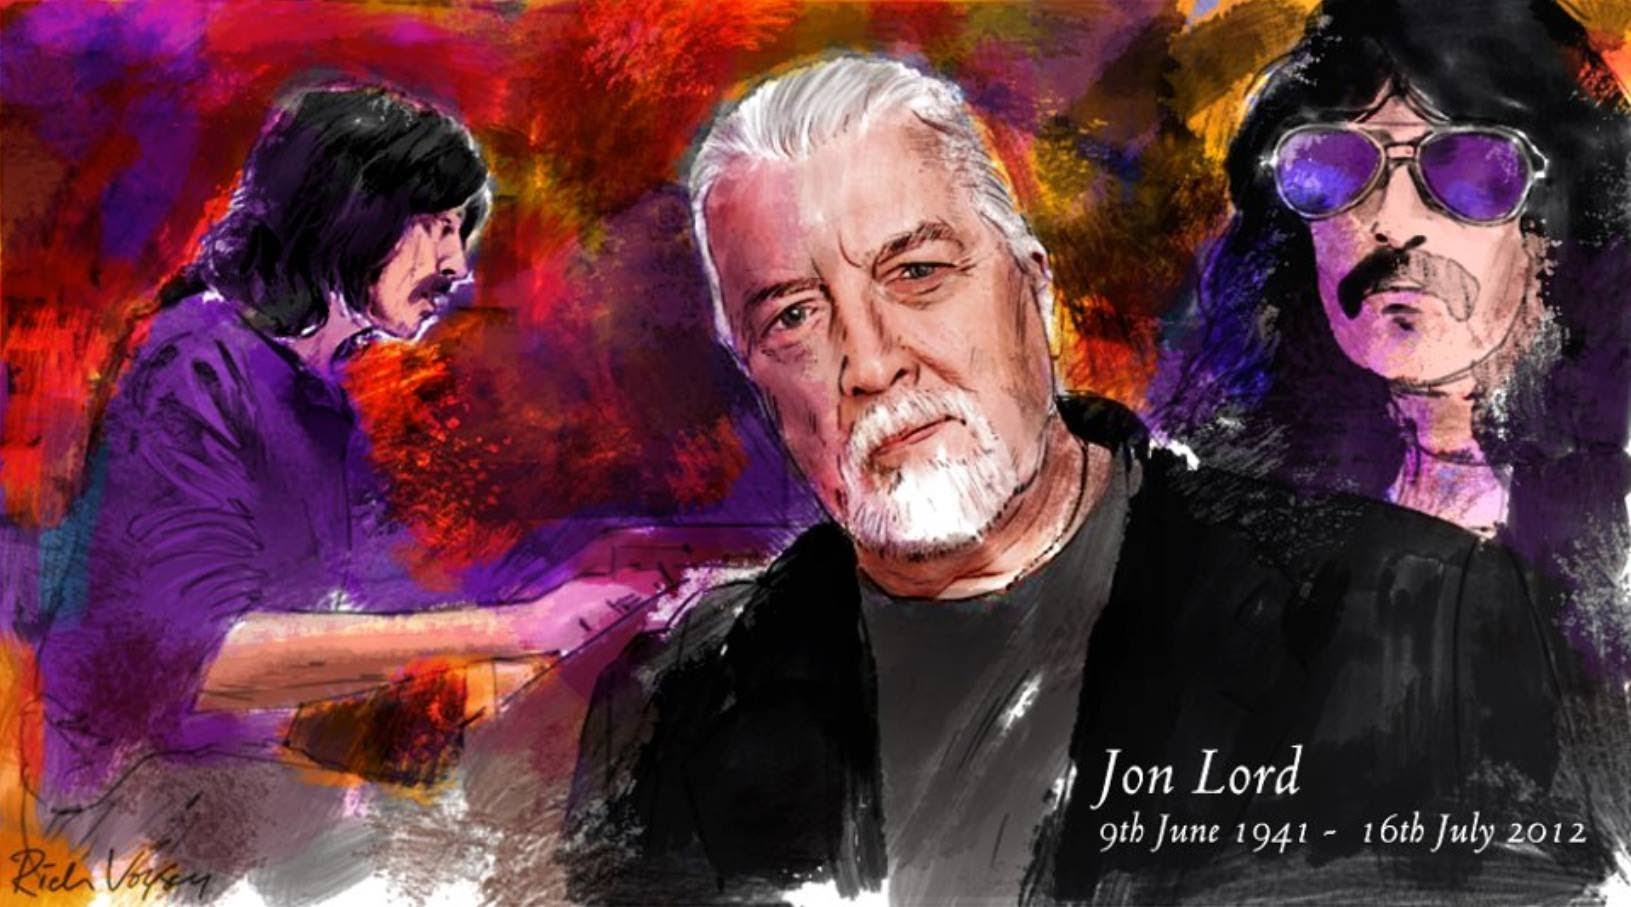 Hear Jon Lord's isolated keyboard track on Highway Star